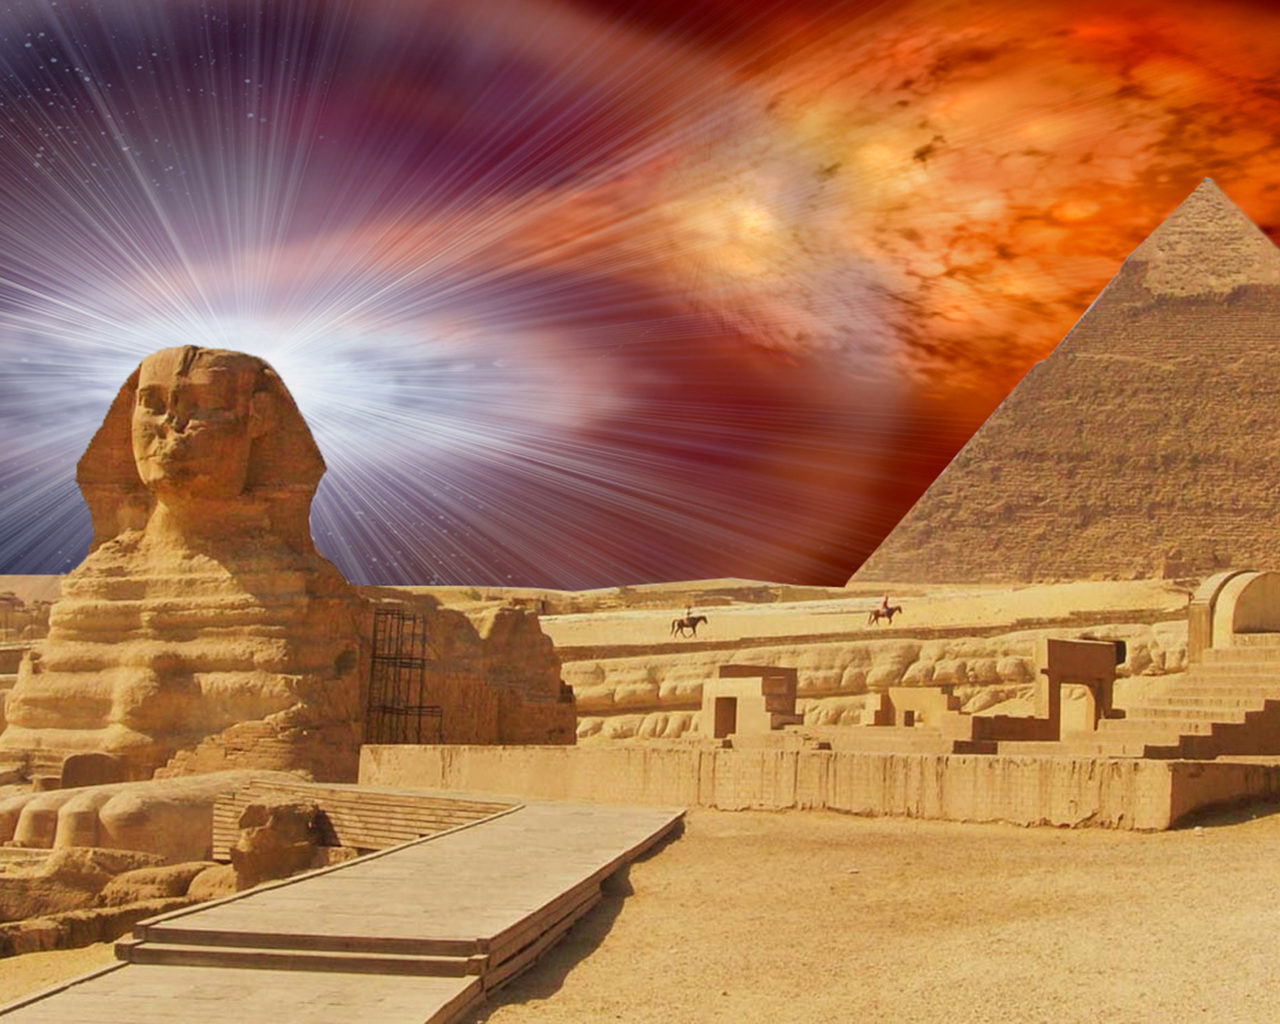 Fall Trees Wallpaper Iphone Egypt Pyramid The Great Sphinx Of Giza With The Pyramid Of